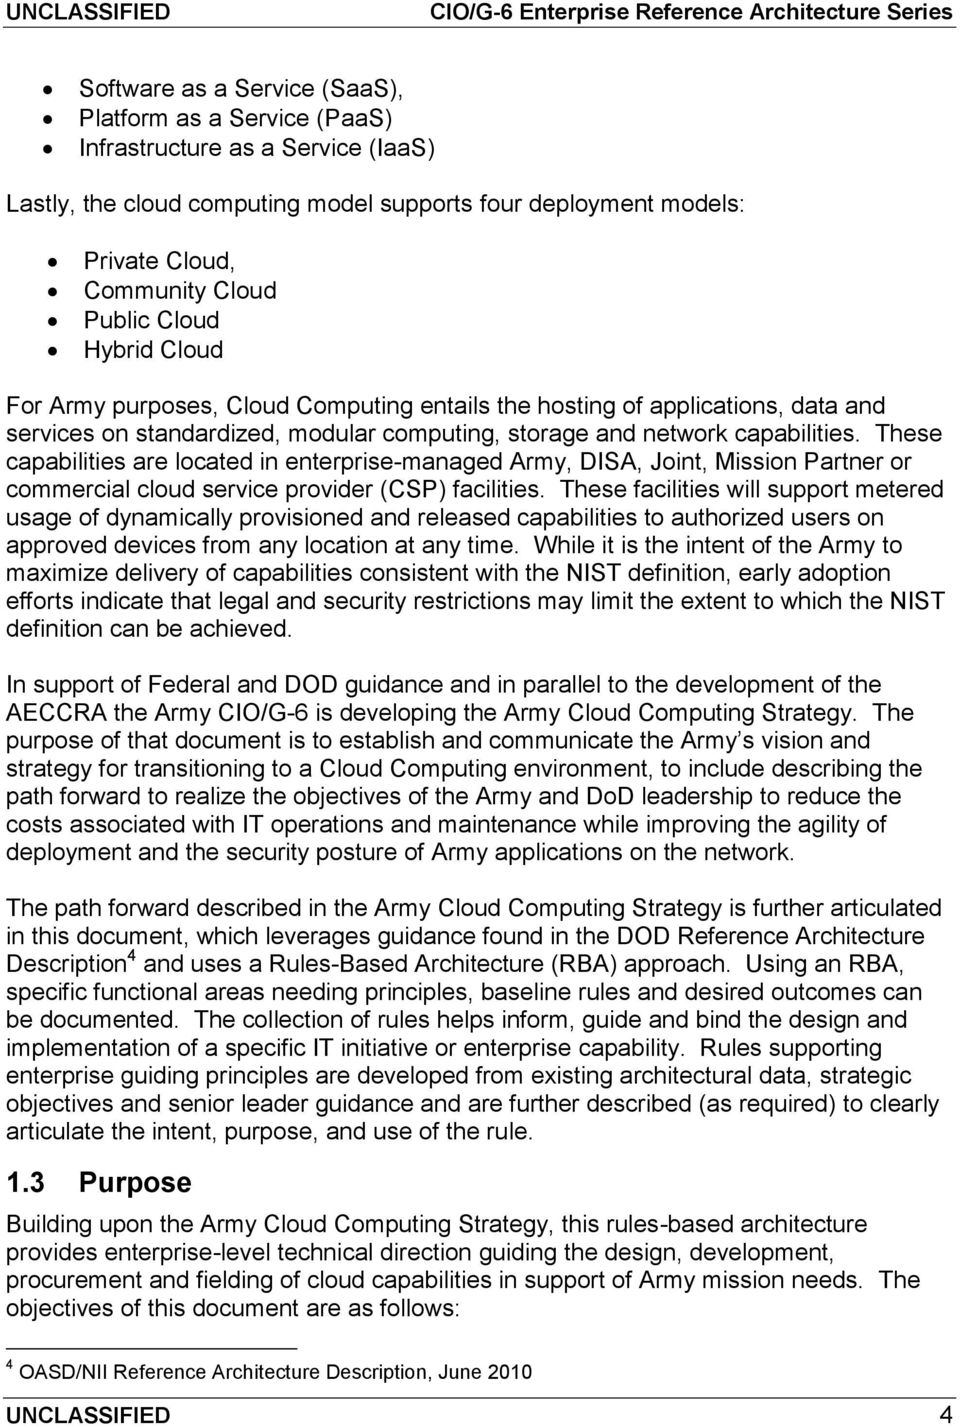 These capabilities are located in enterprise-managed Army, DISA, Joint, Mission Partner or commercial cloud service provider (CSP) facilities.